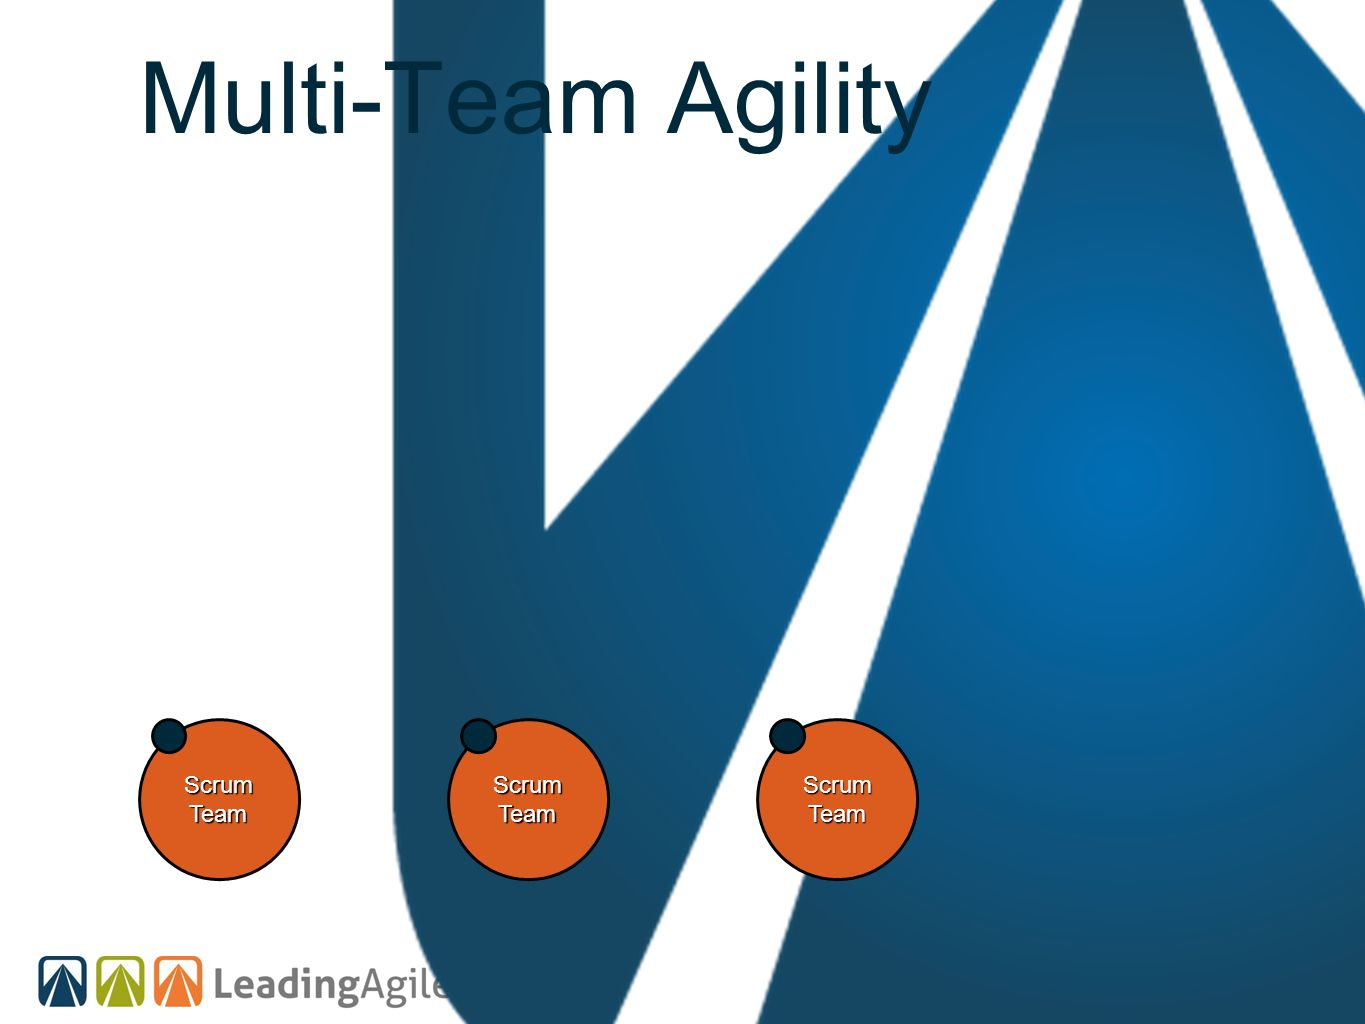 Multi-Team Agility Scrum Team Scrum Team Scrum Team